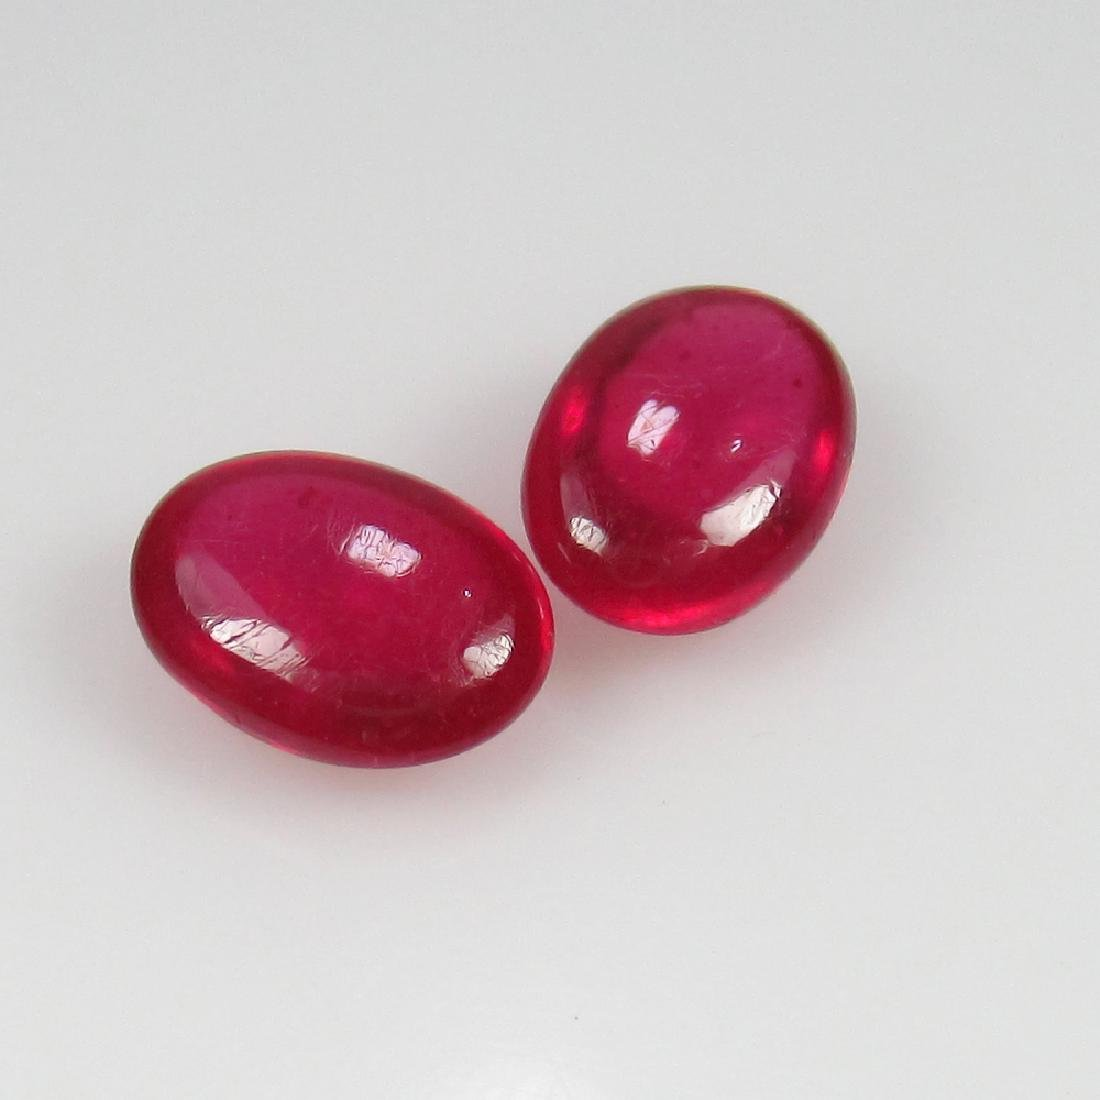 2.42 Ct Genuine Pinkish Red Ruby Matching Oval Cabochon - 2